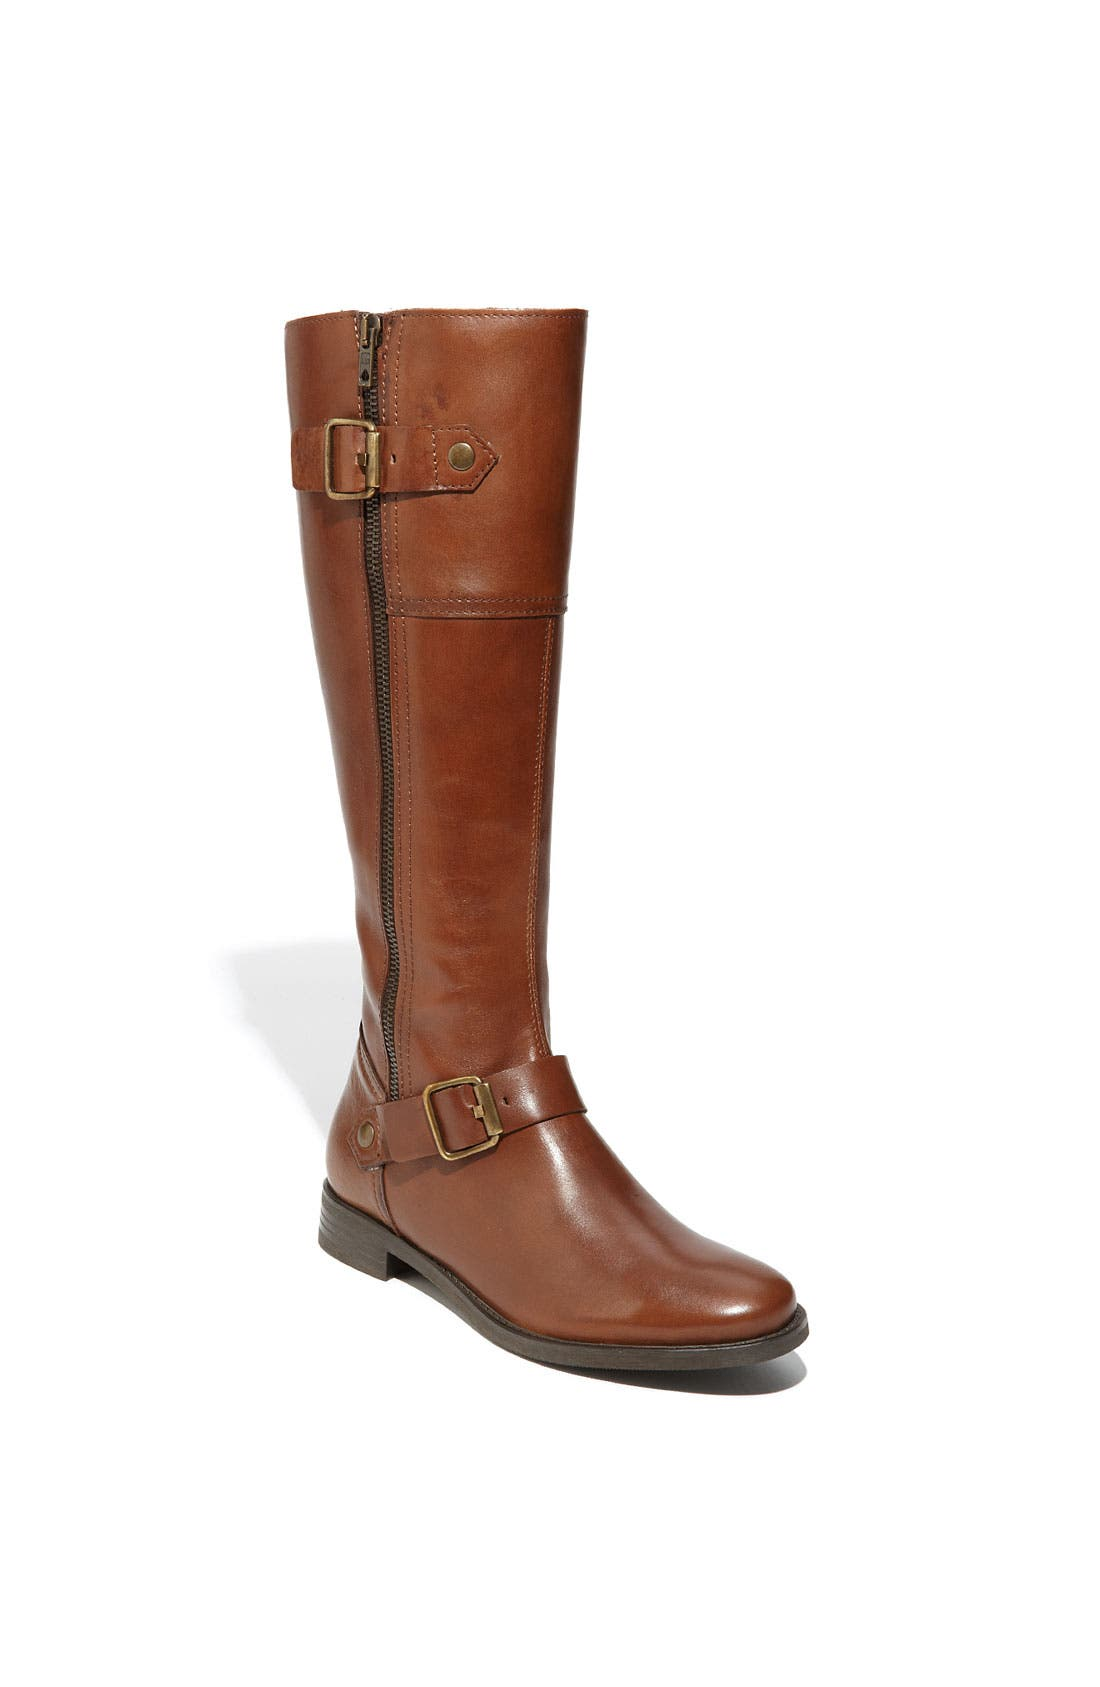 Alternate Image 1 Selected - ALDO 'Roediger Riding' Boot